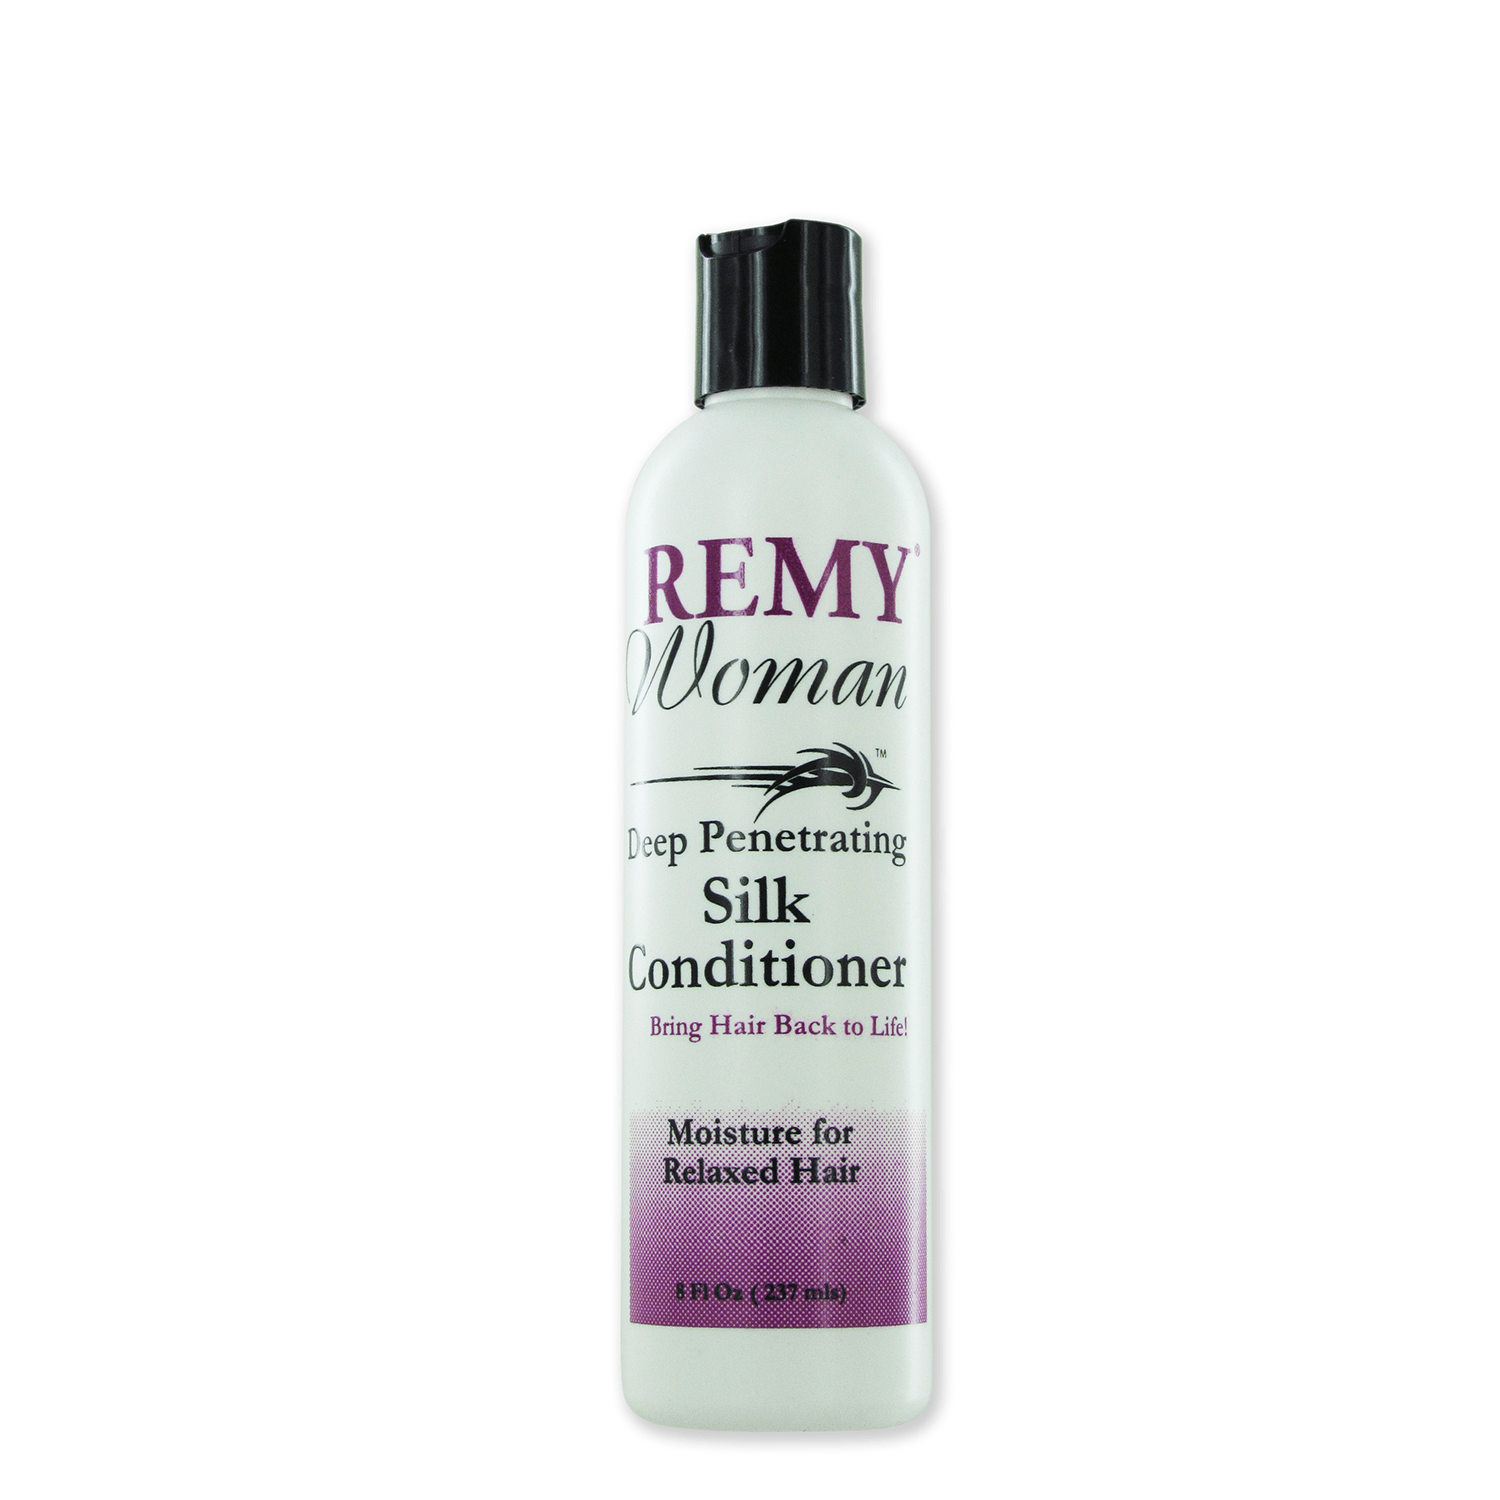 Deep Penetrating Silk Conditioner